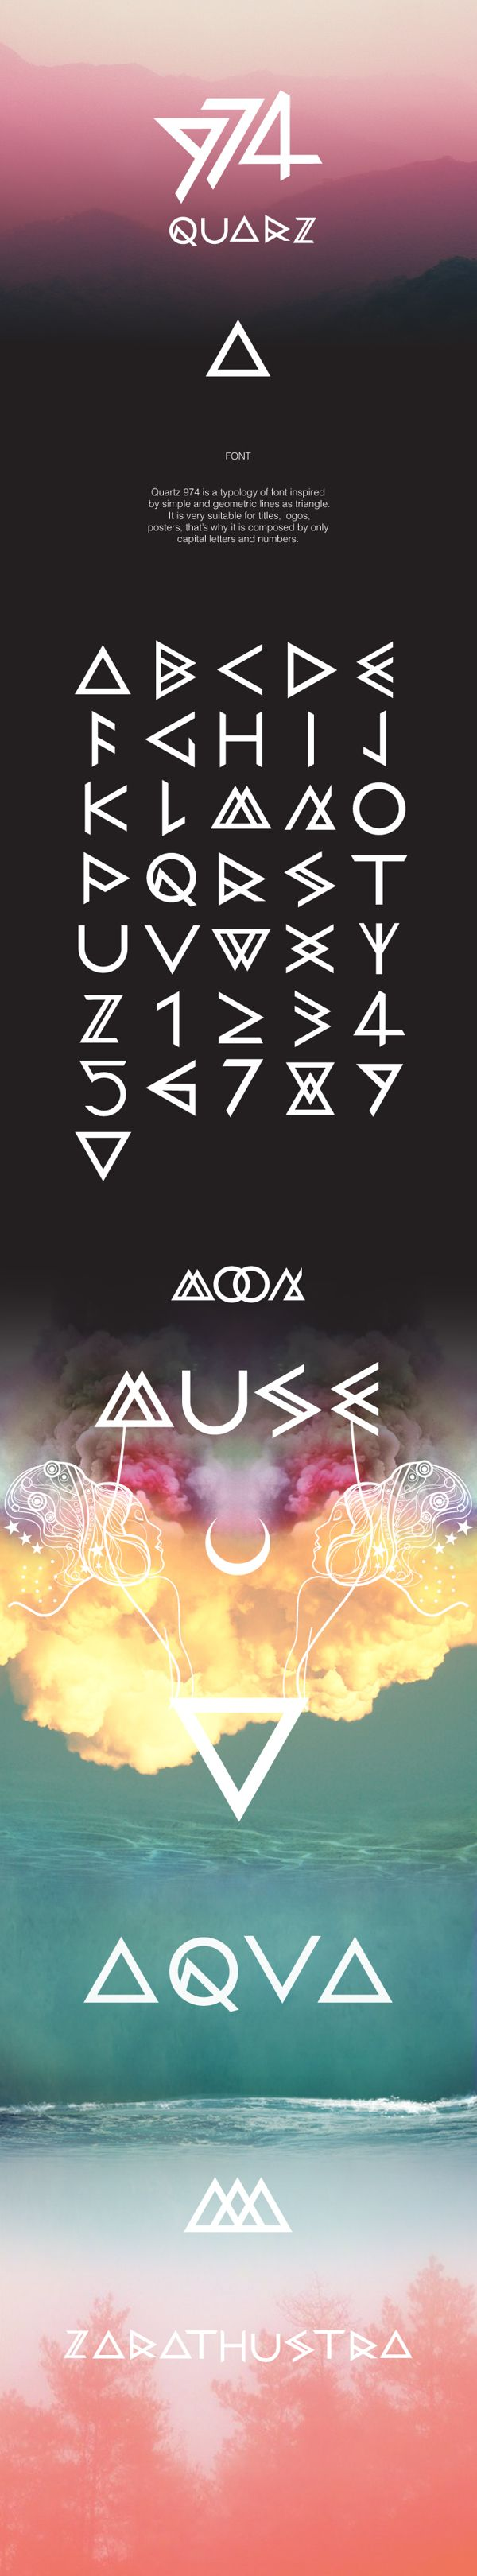 QUARZ 974 by Domenico Ruffo, via Behance , font , typography , triangle , poster , geometric , decorative                                                                                                                                                                                 Más